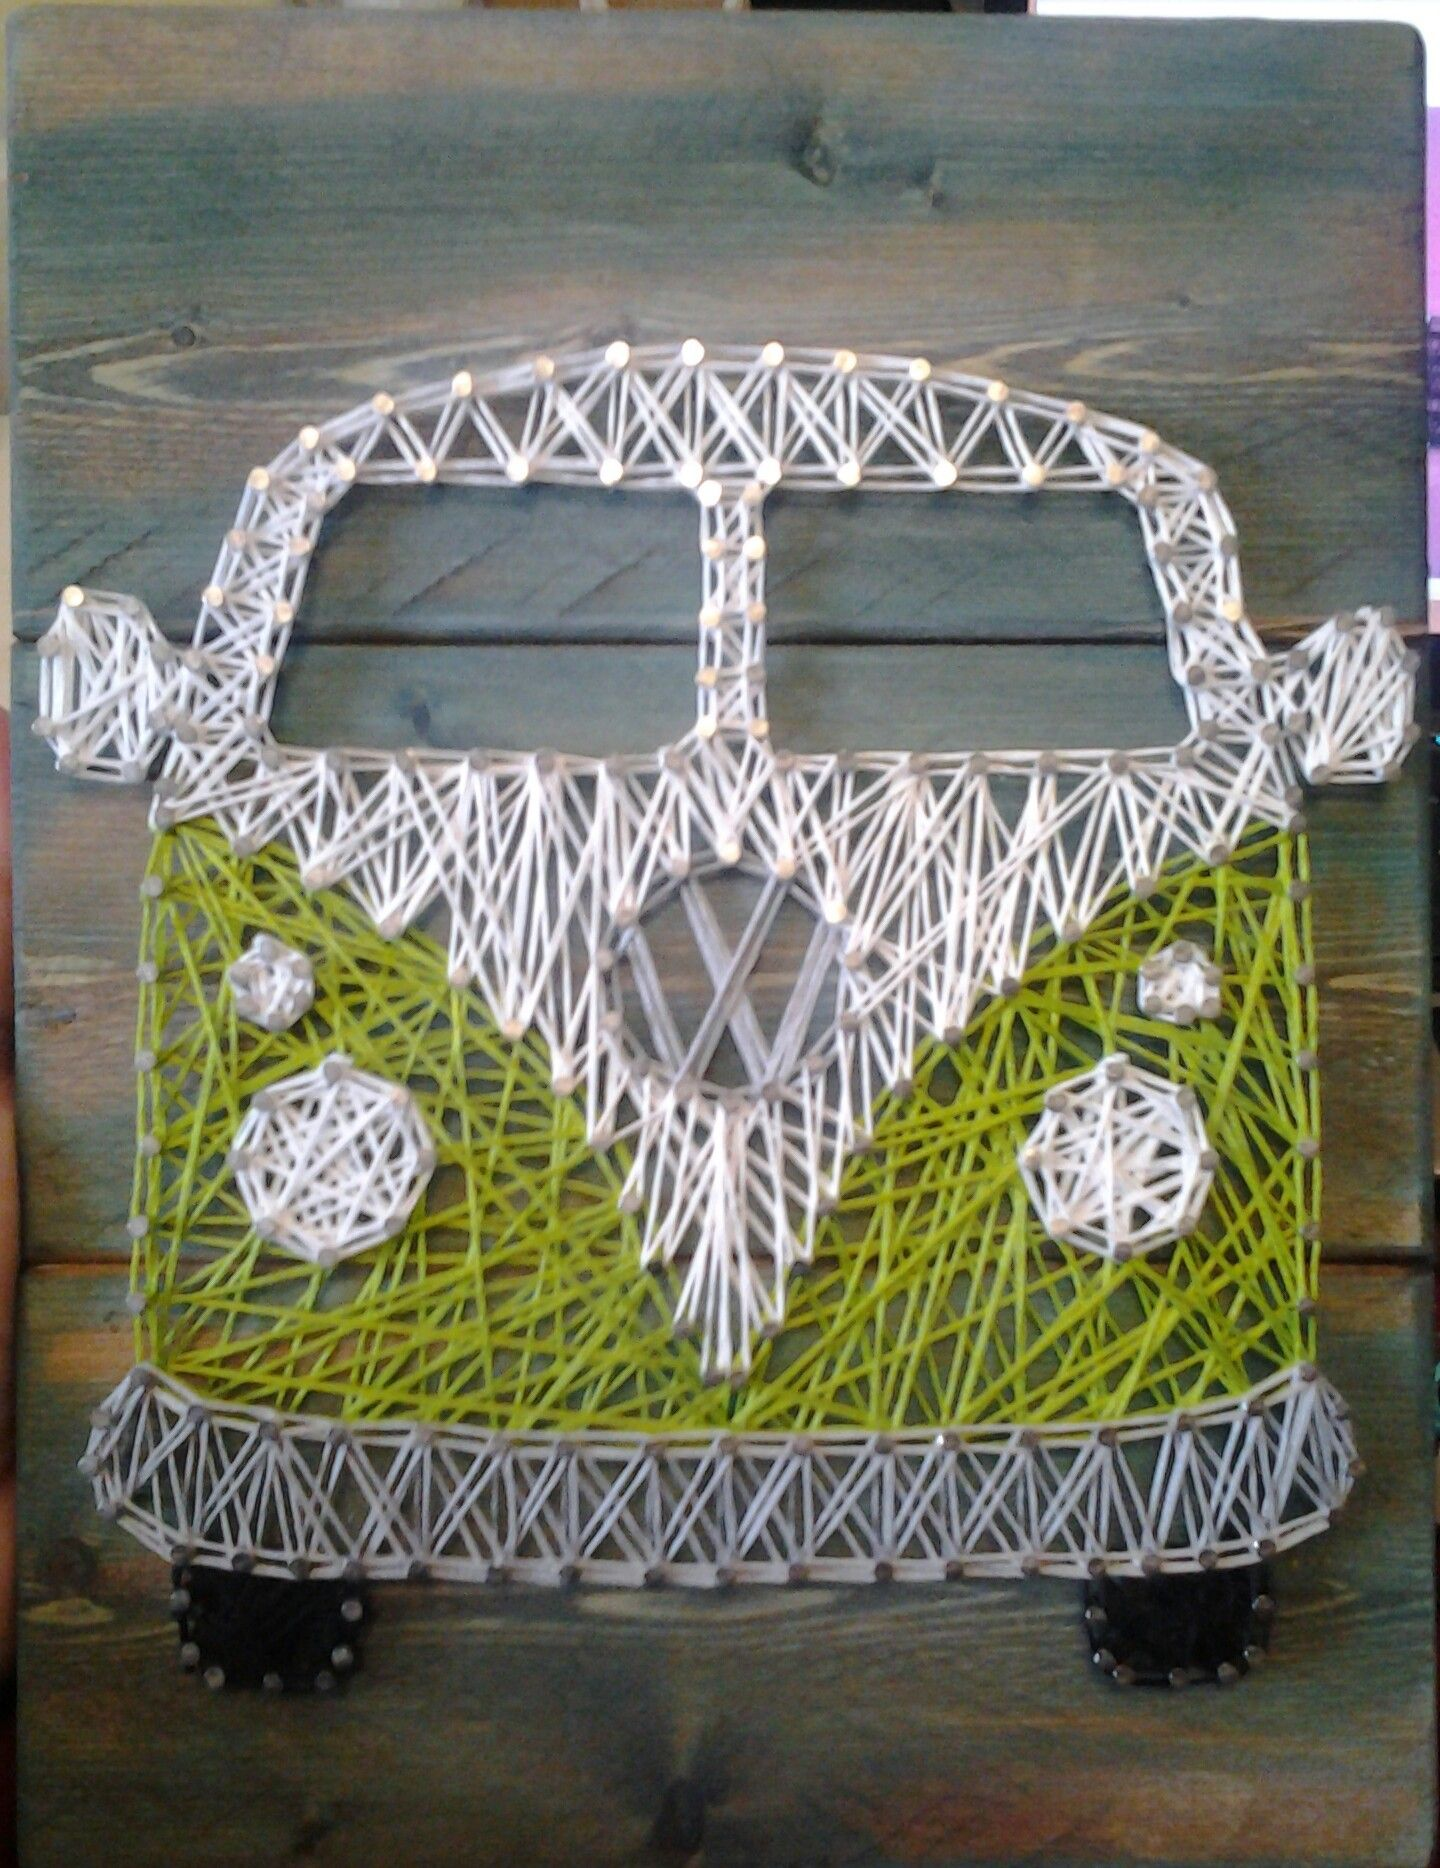 VW Bus, Hippie Van, String Art | DIY\'ed | Pinterest | String art, Vw ...